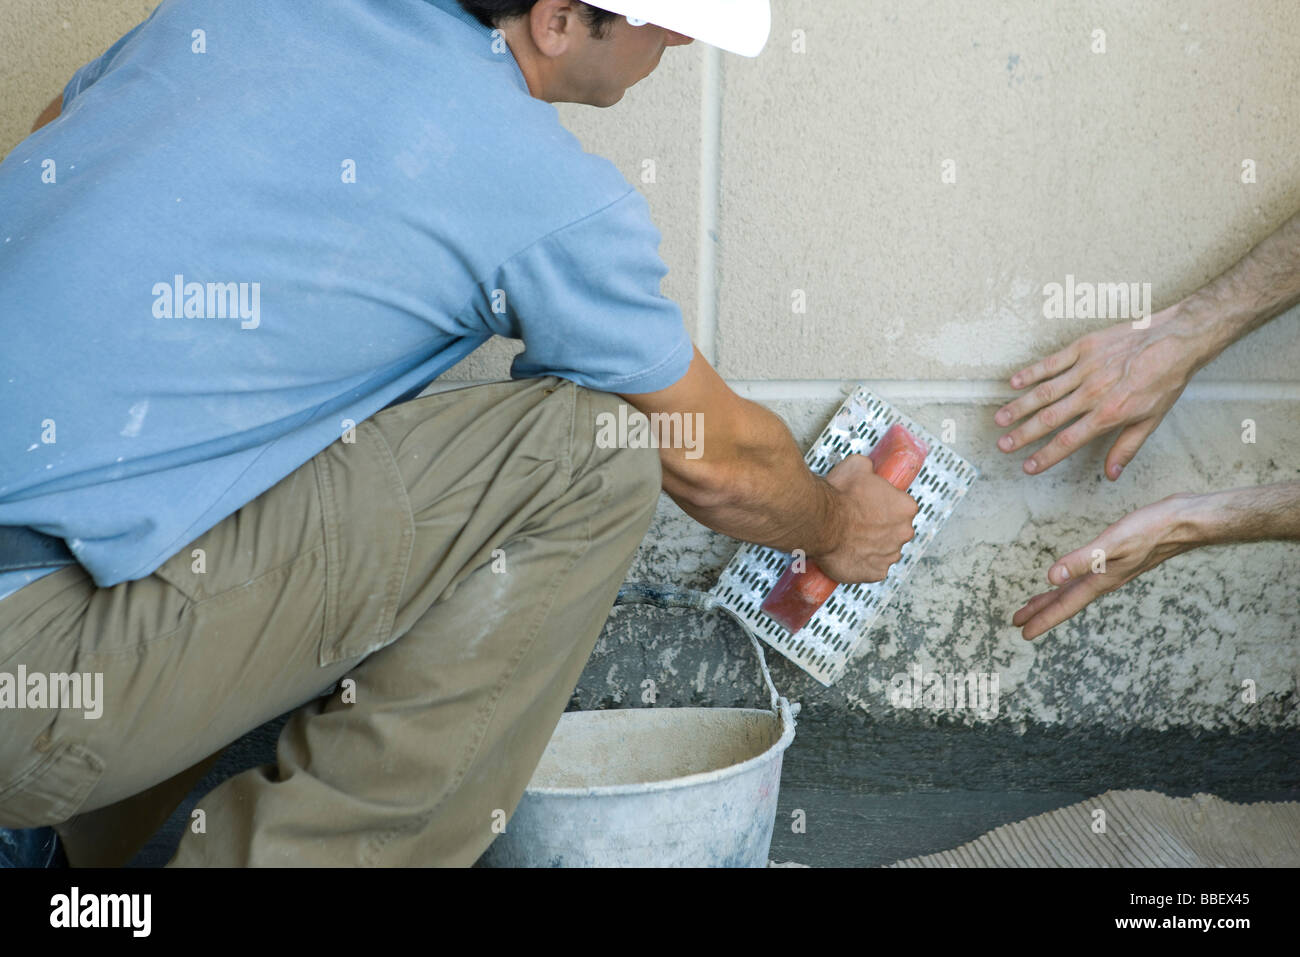 Mason receving guidance on proper masonry technique - Stock Image